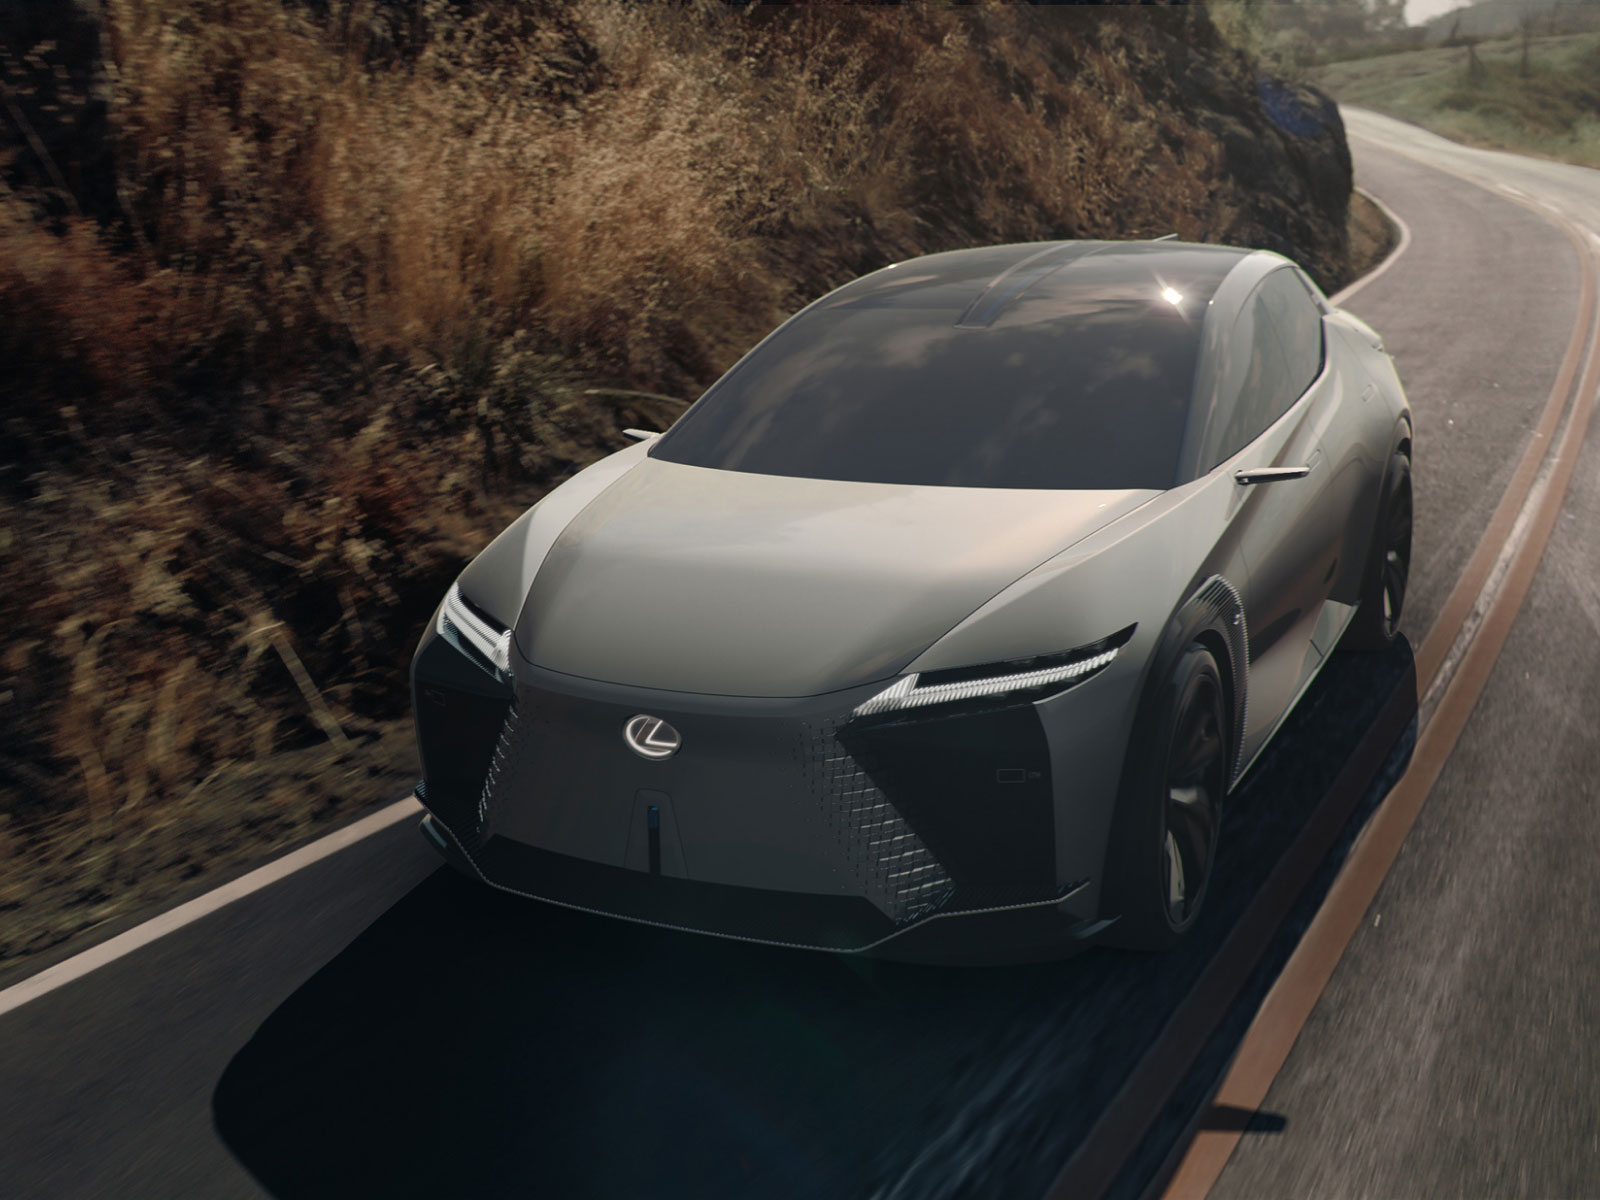 The Lexus LF-Z Electrified Concept Car